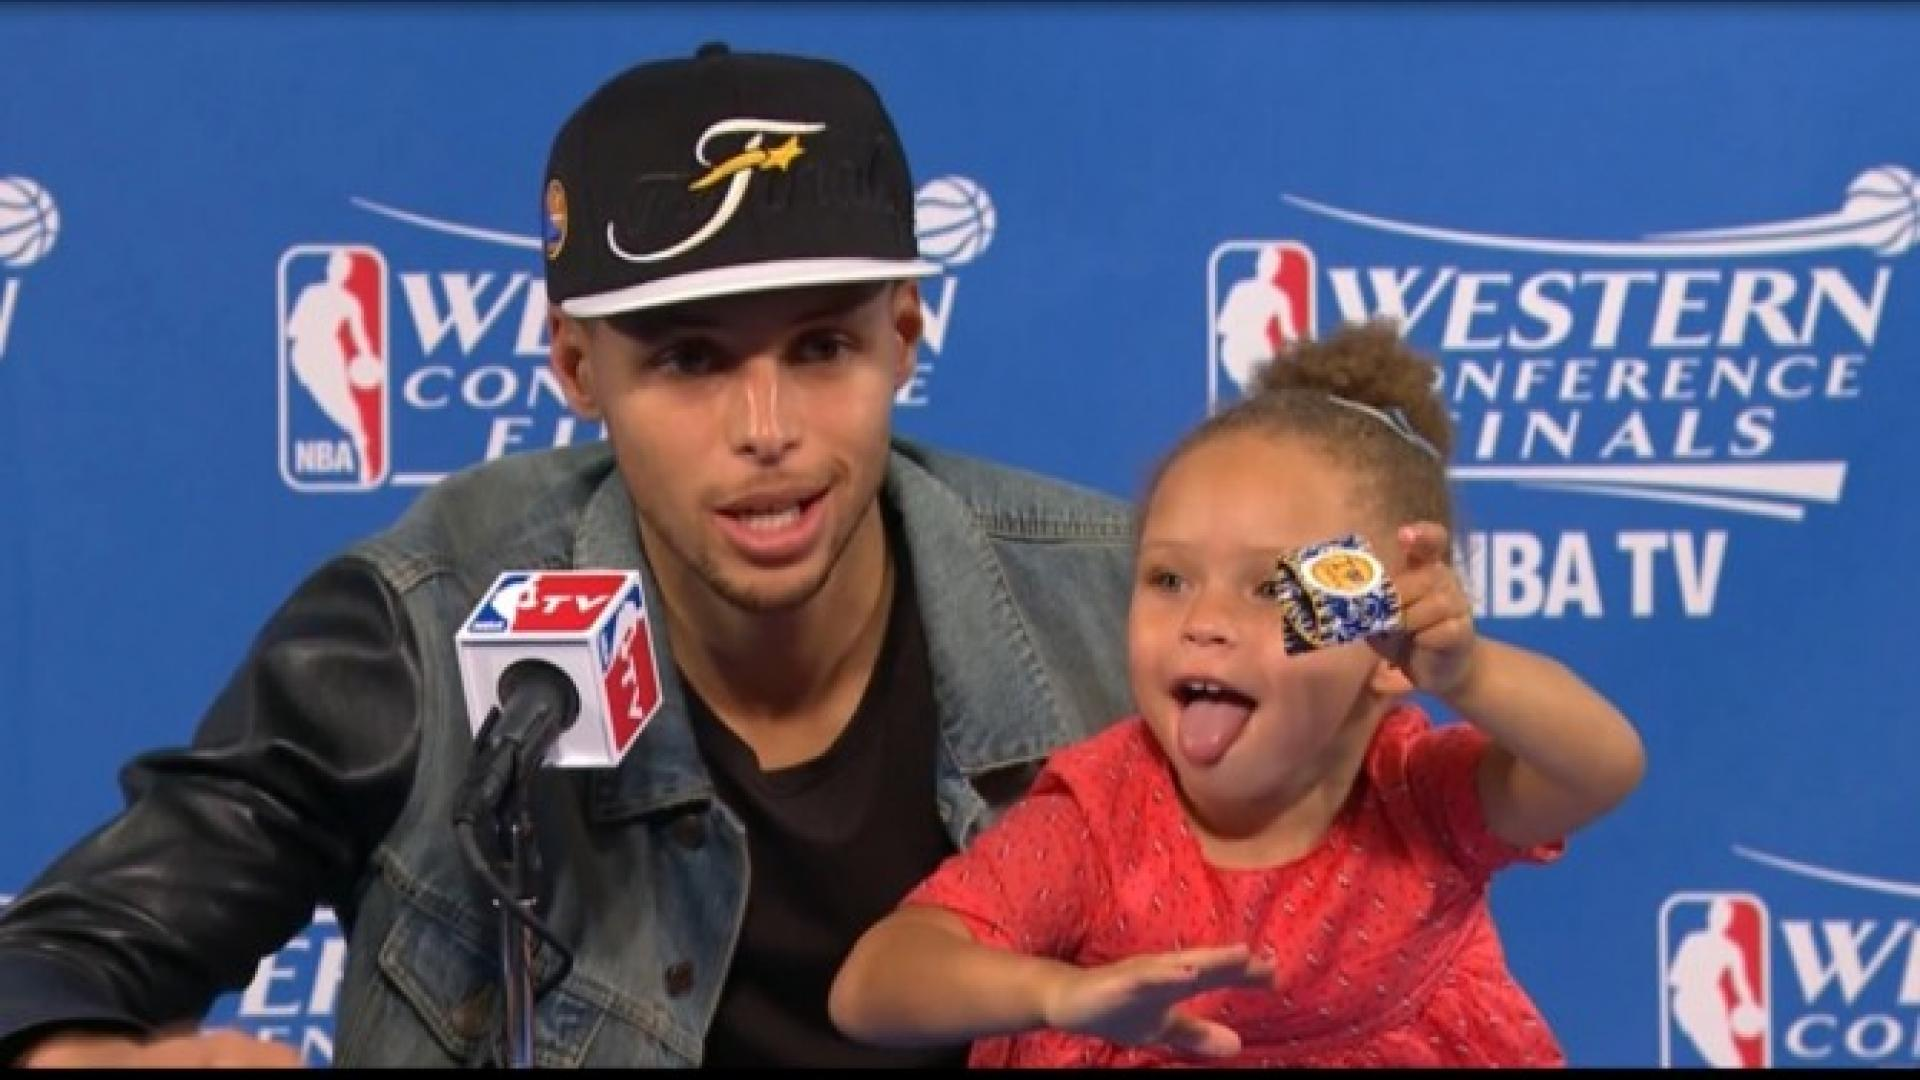 Stephen Curry S Daughter Steals The Show Again At Nba Postgame Interview Inside Edition